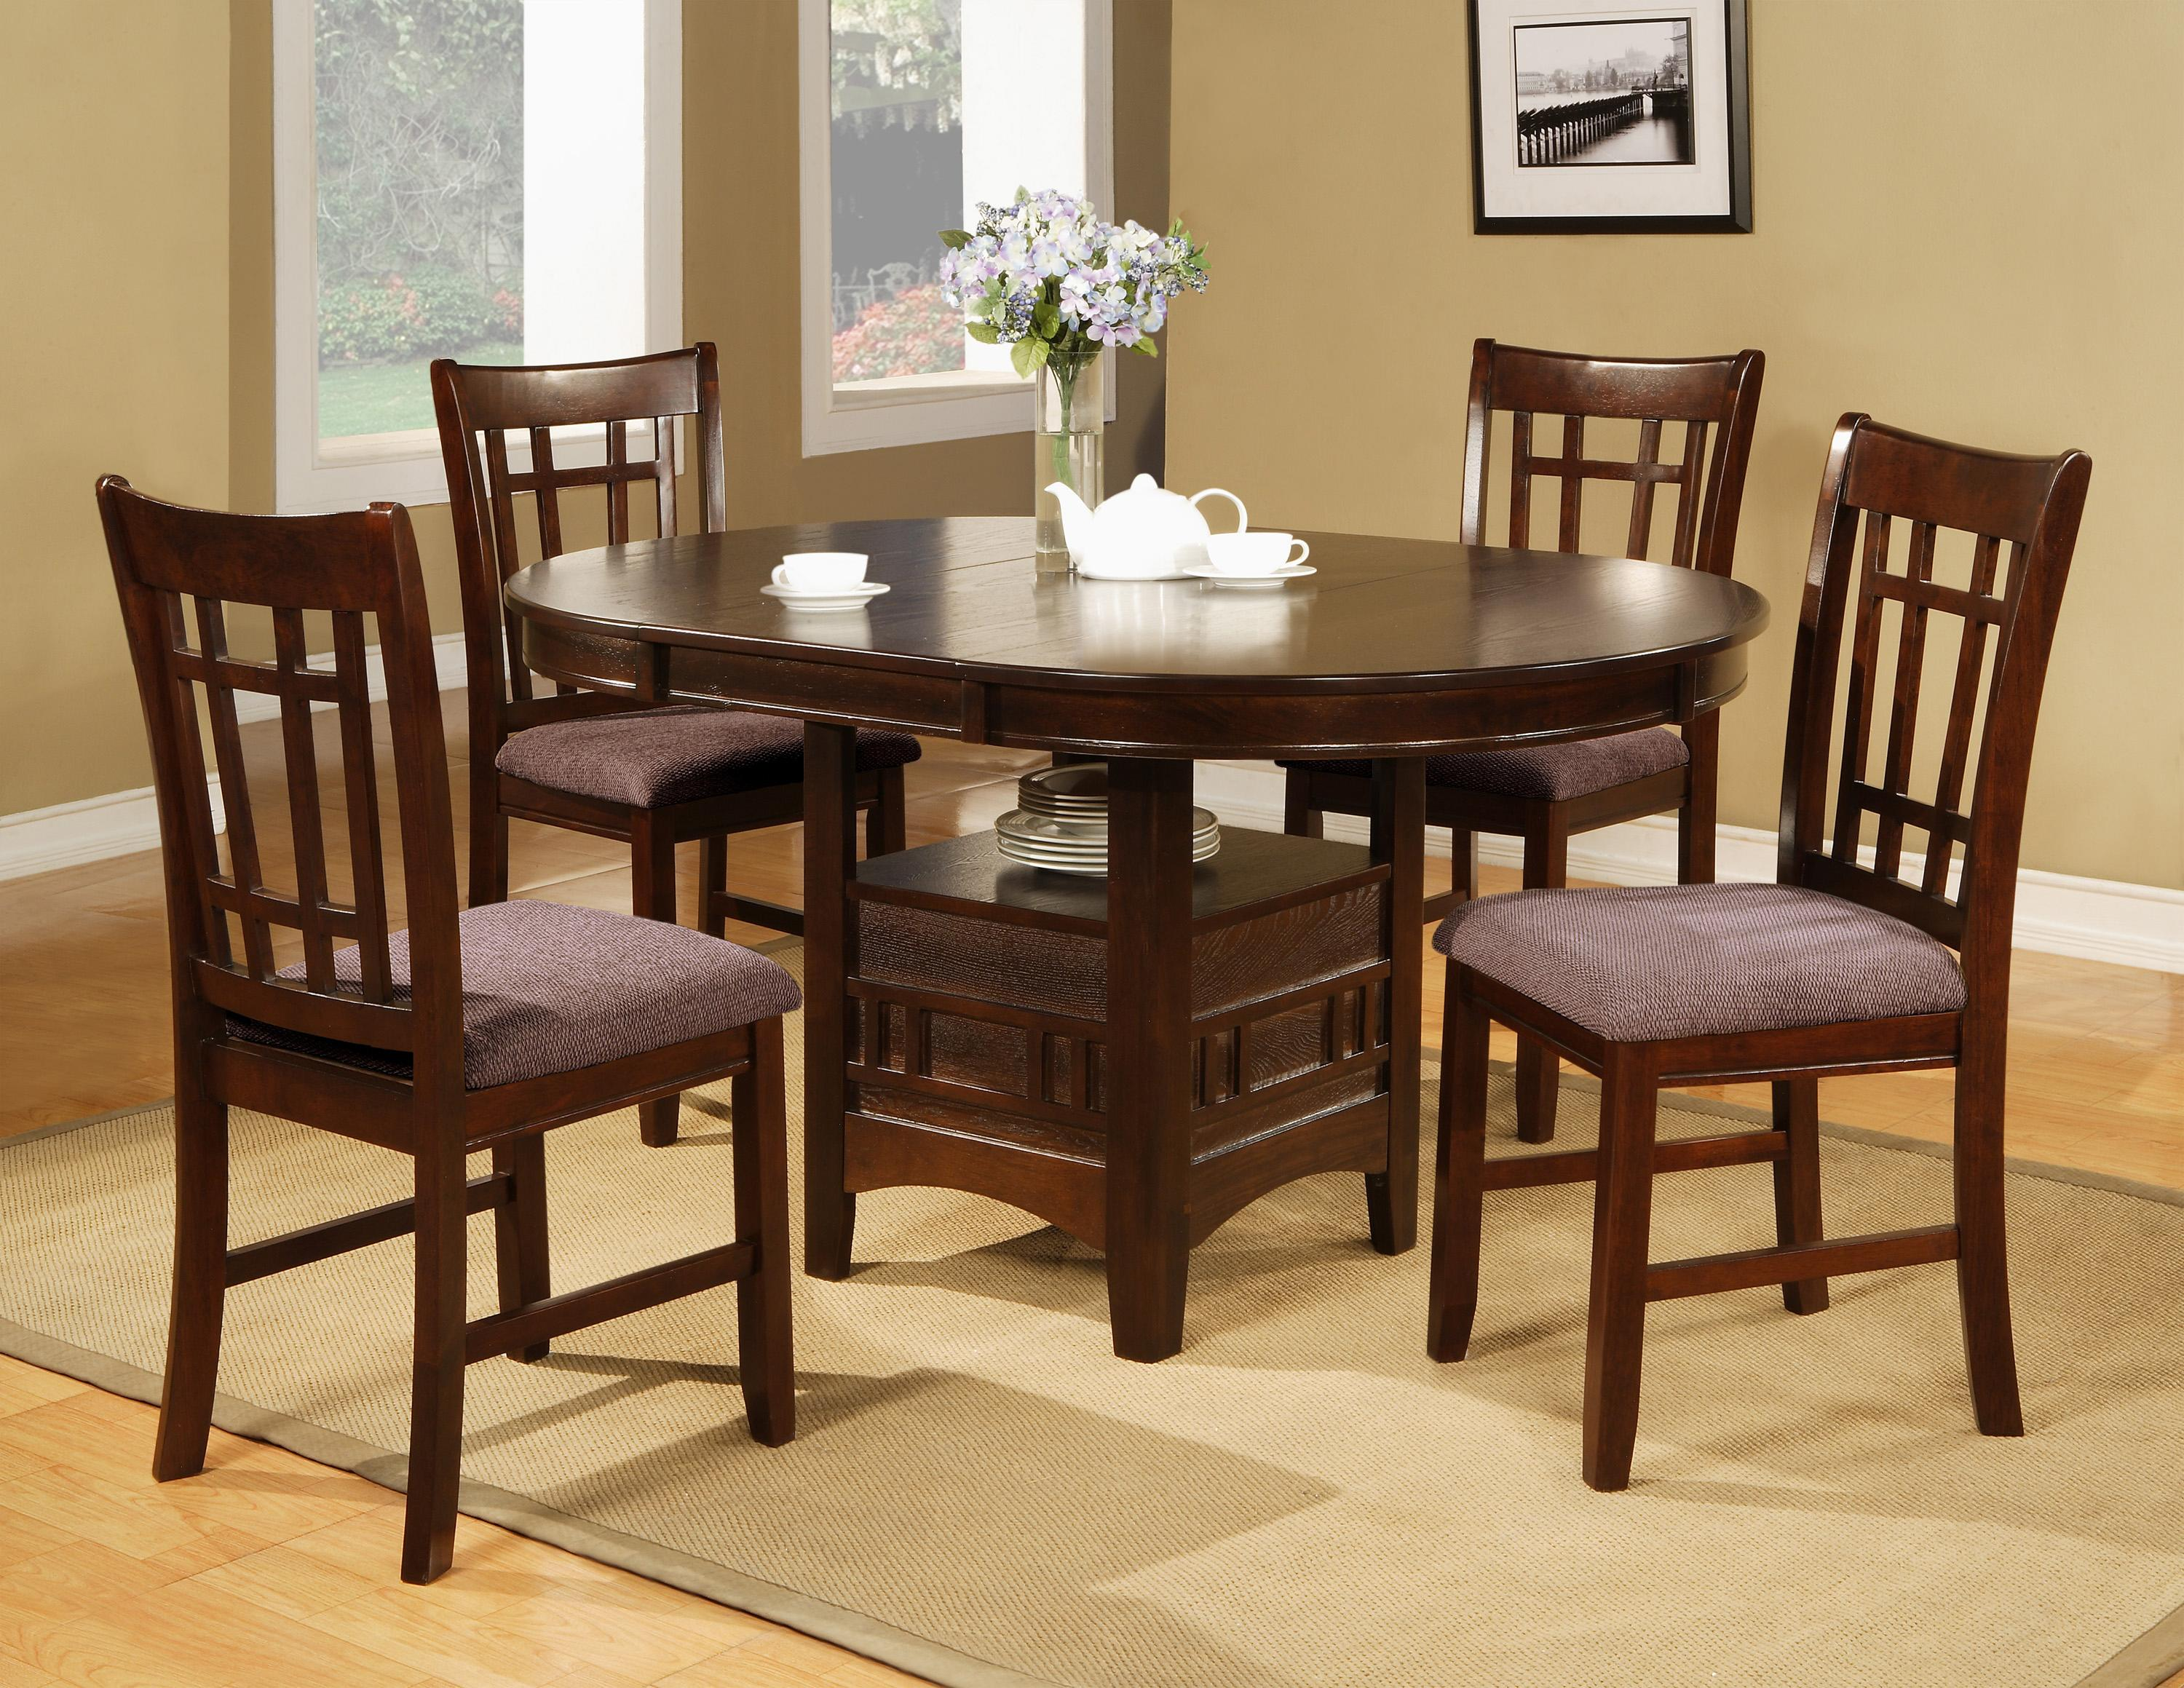 Crown Mark Empire 5 Piece Dining Table With 18 Leaf Chair Set